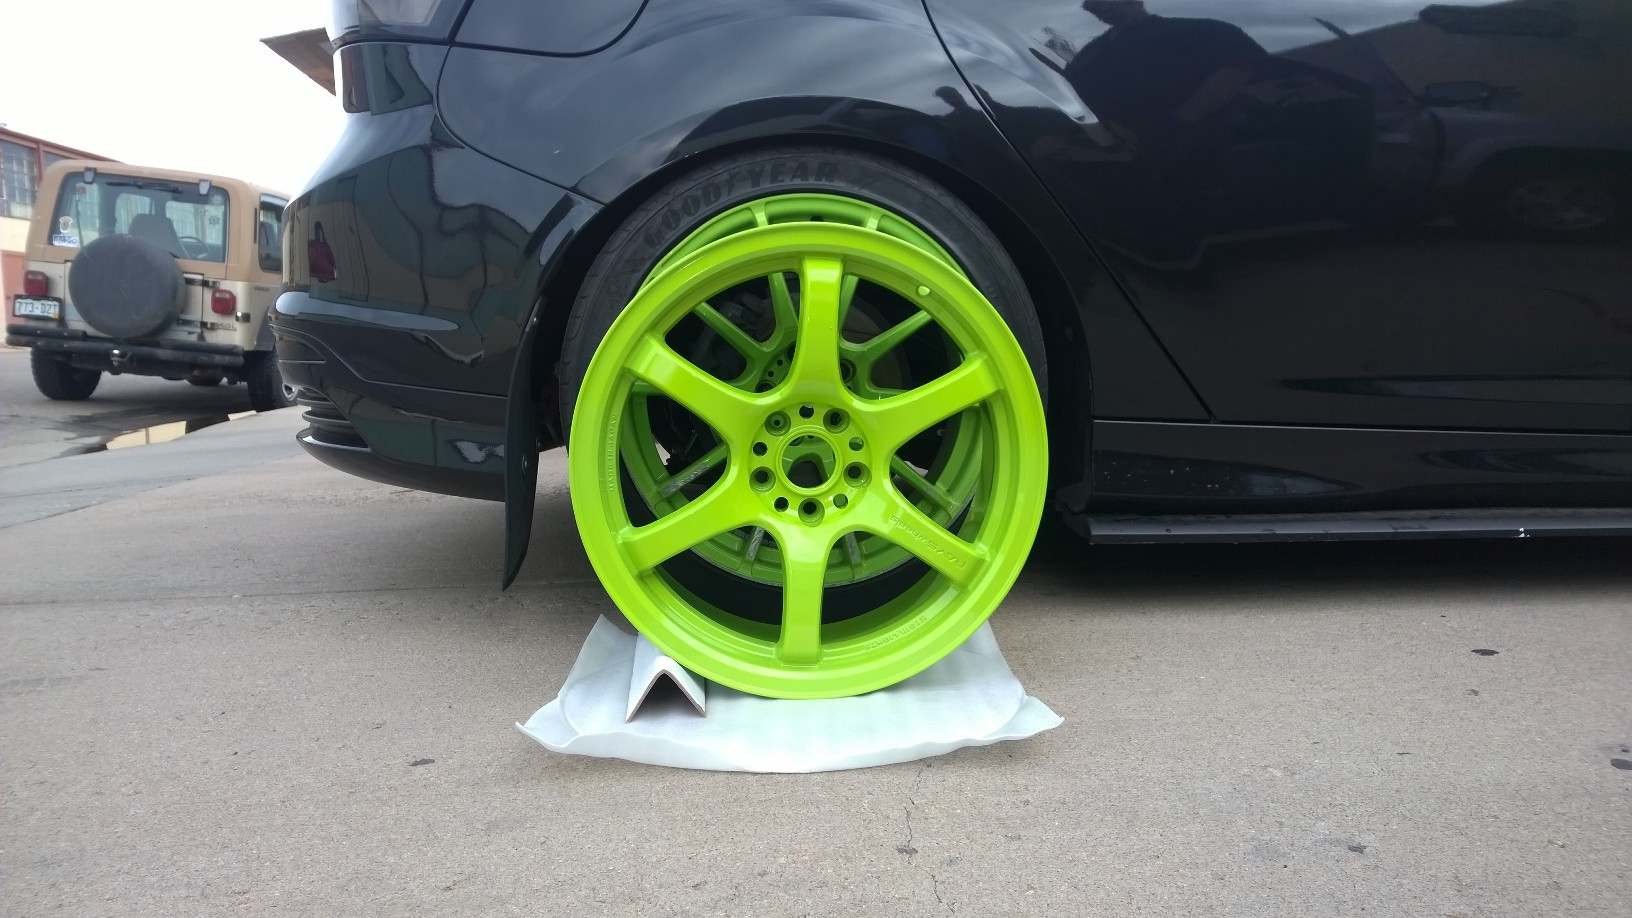 Official Focus St Wheel And Tire Fitment Picture Thread Add Your